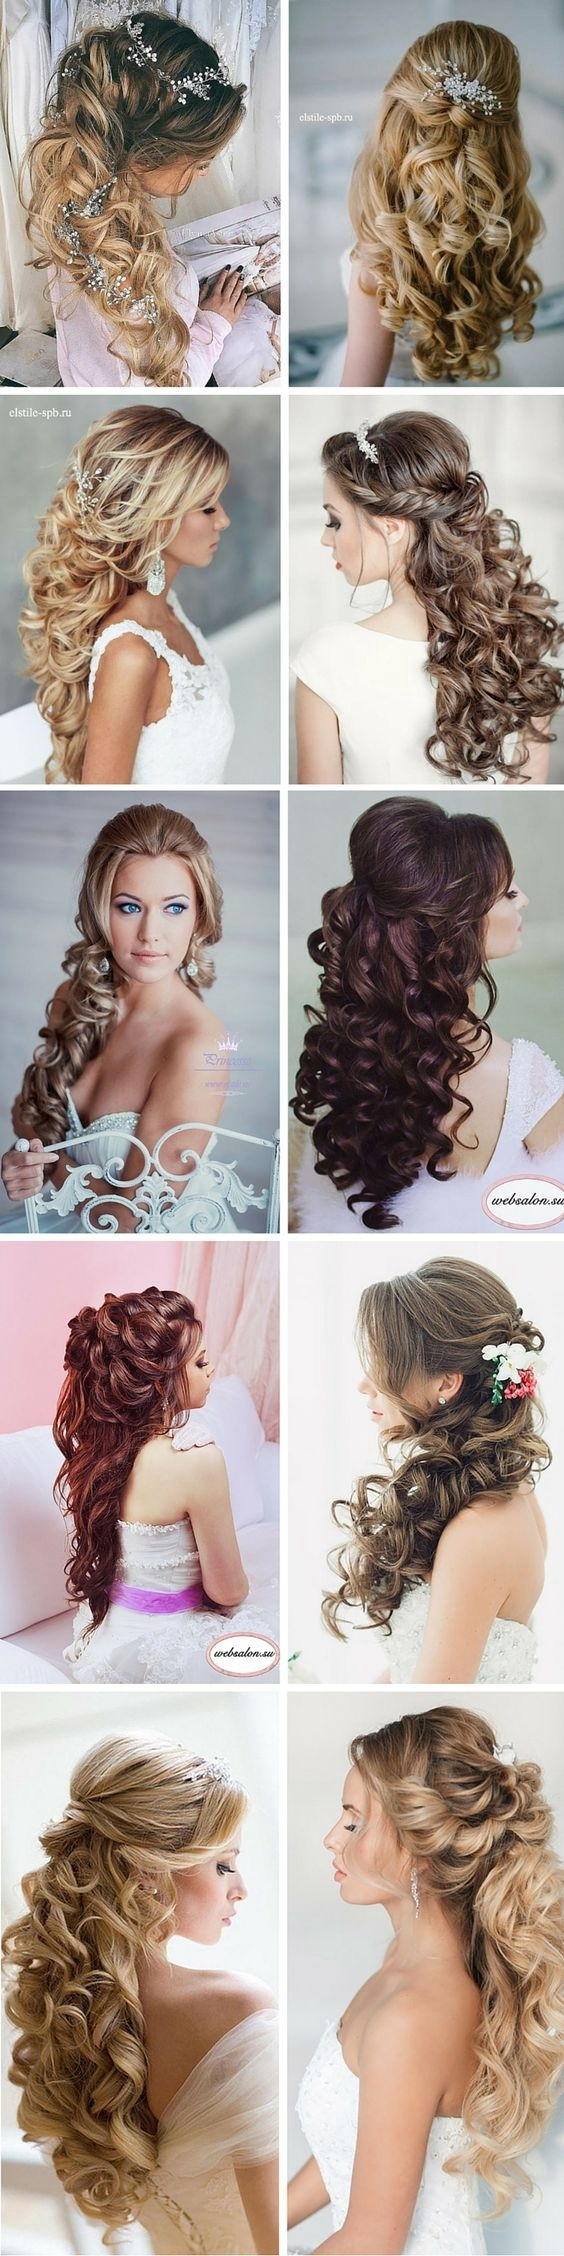 100+ Romantic Long Wedding Hairstyles 2018 – Curls, Half Up, Updos In Well Known Down Curly Wedding Hairstyles (View 11 of 15)